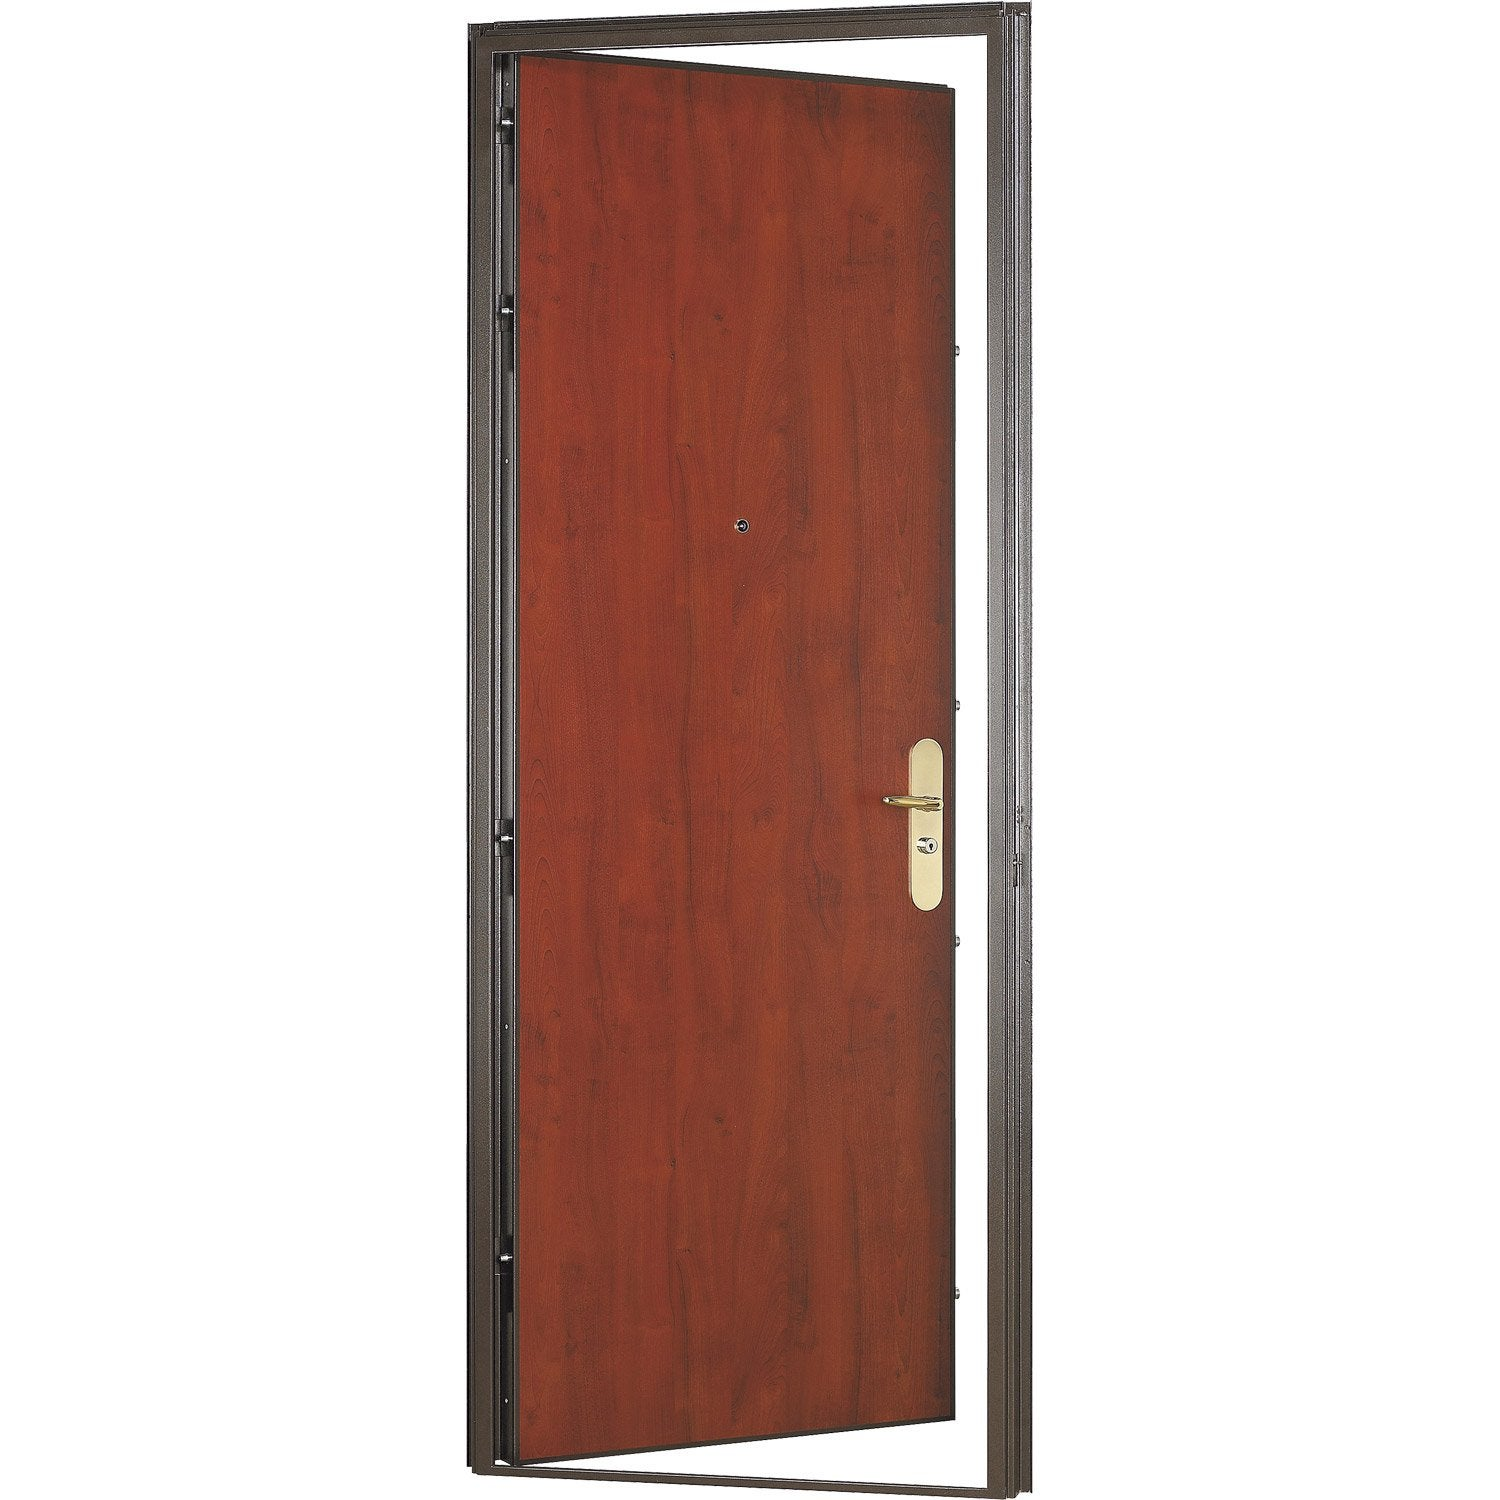 Porte blind e sur mesure diamant 2 leroy merlin for Porte western leroy merlin